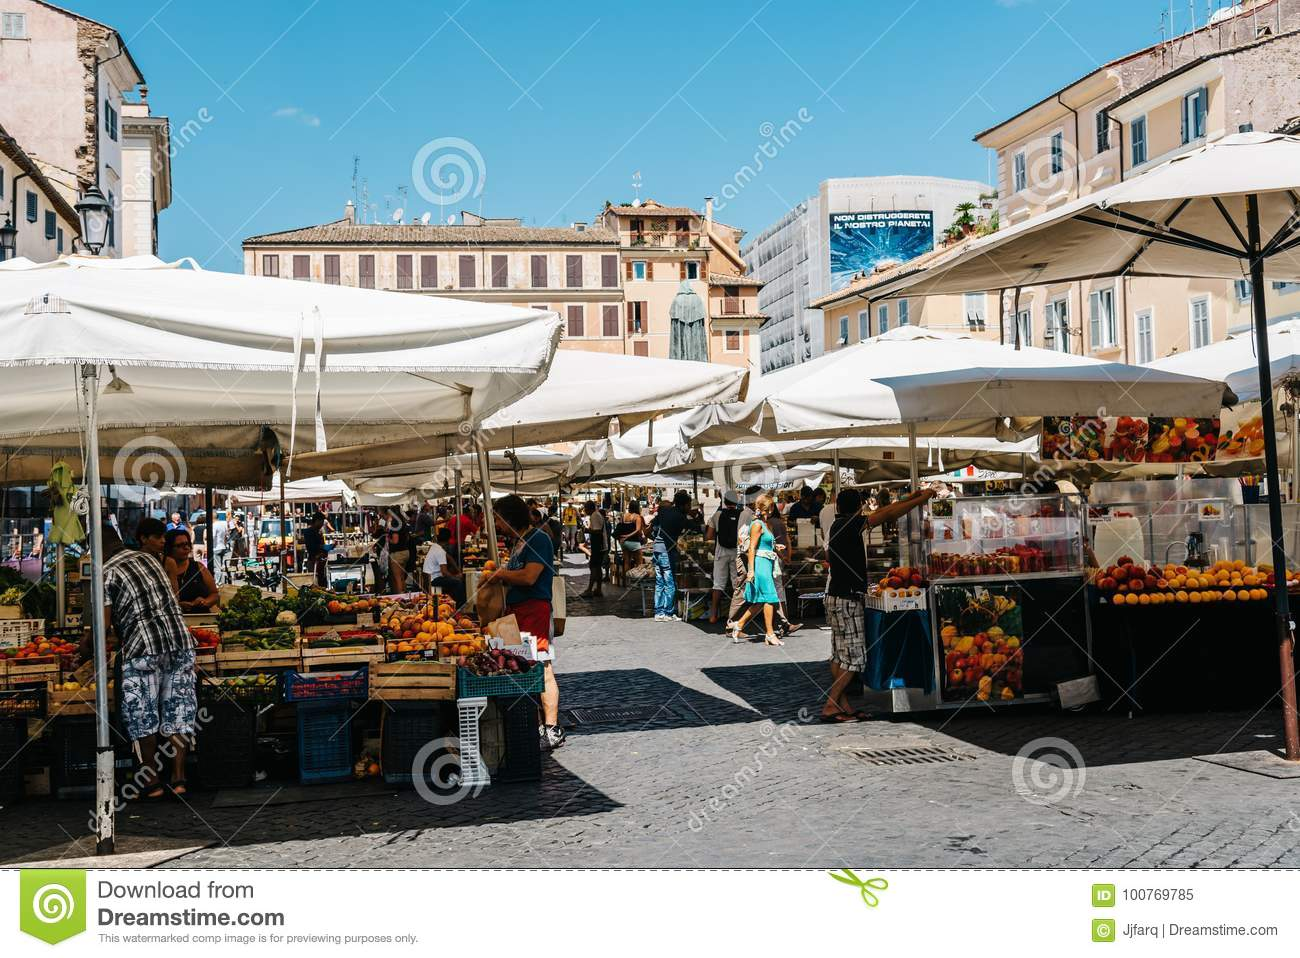 Street market with fruits in Rome.